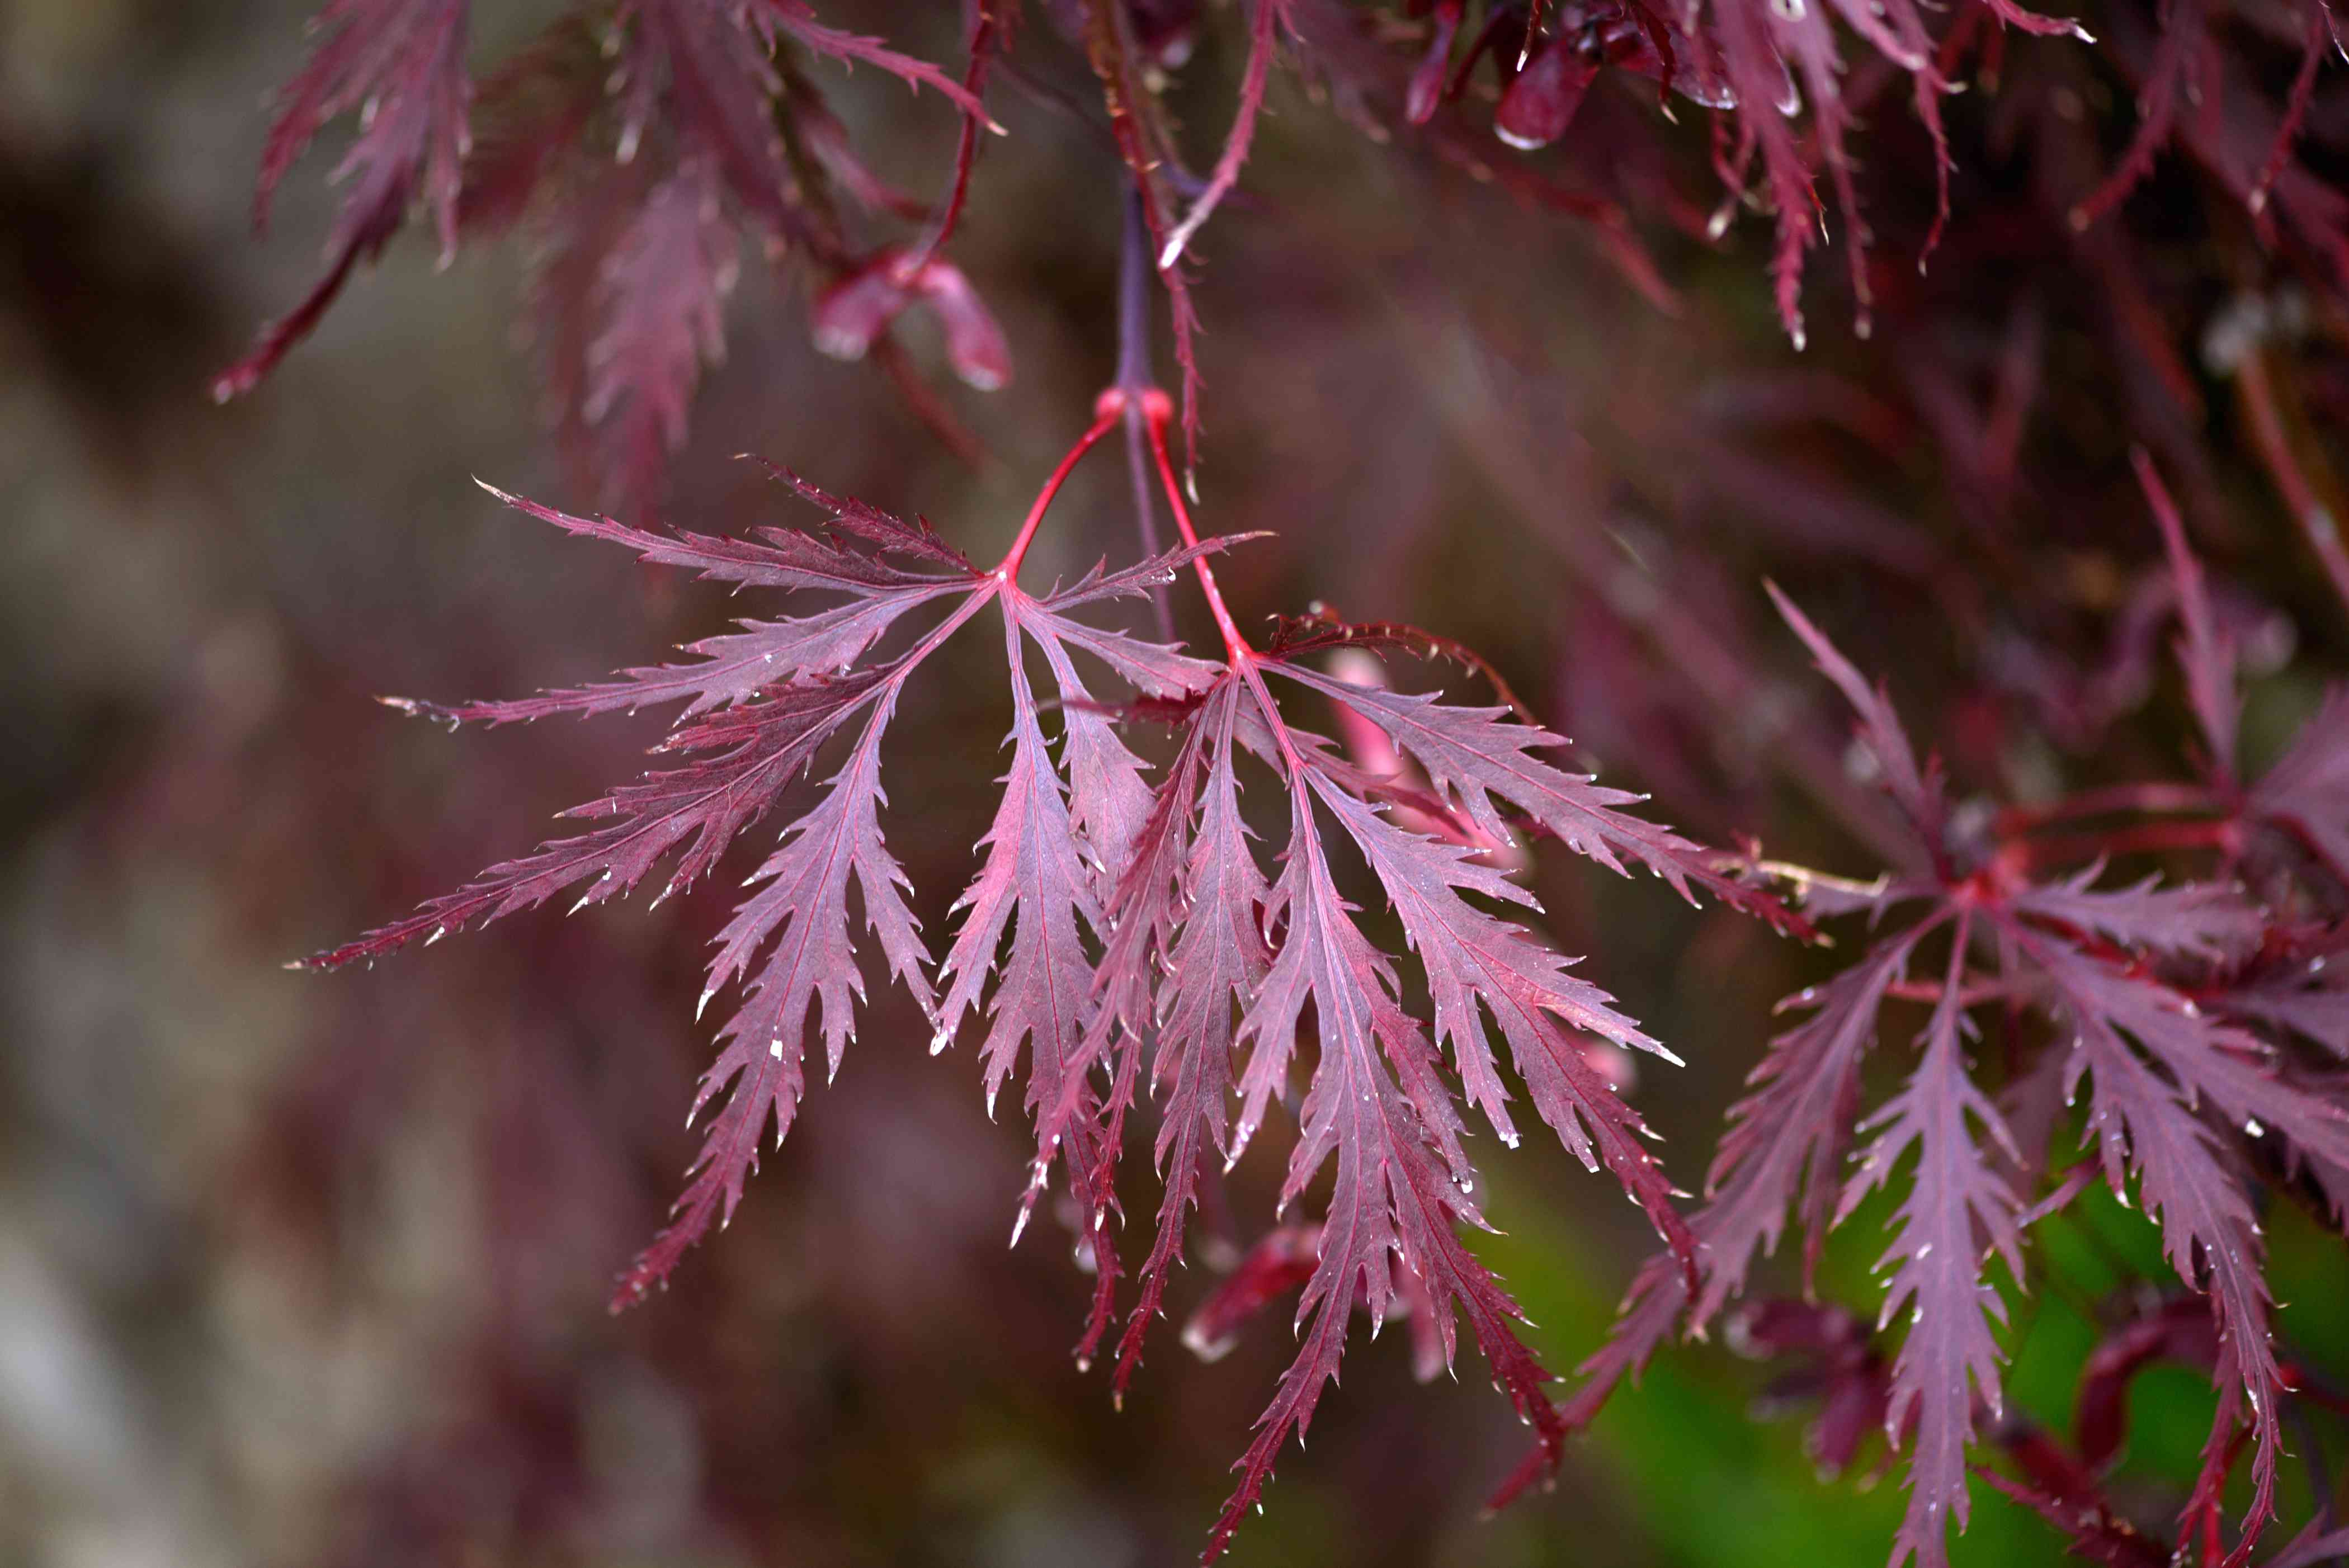 Red dragon Japanese maple tree branch with deeply cut and feathery red leaves